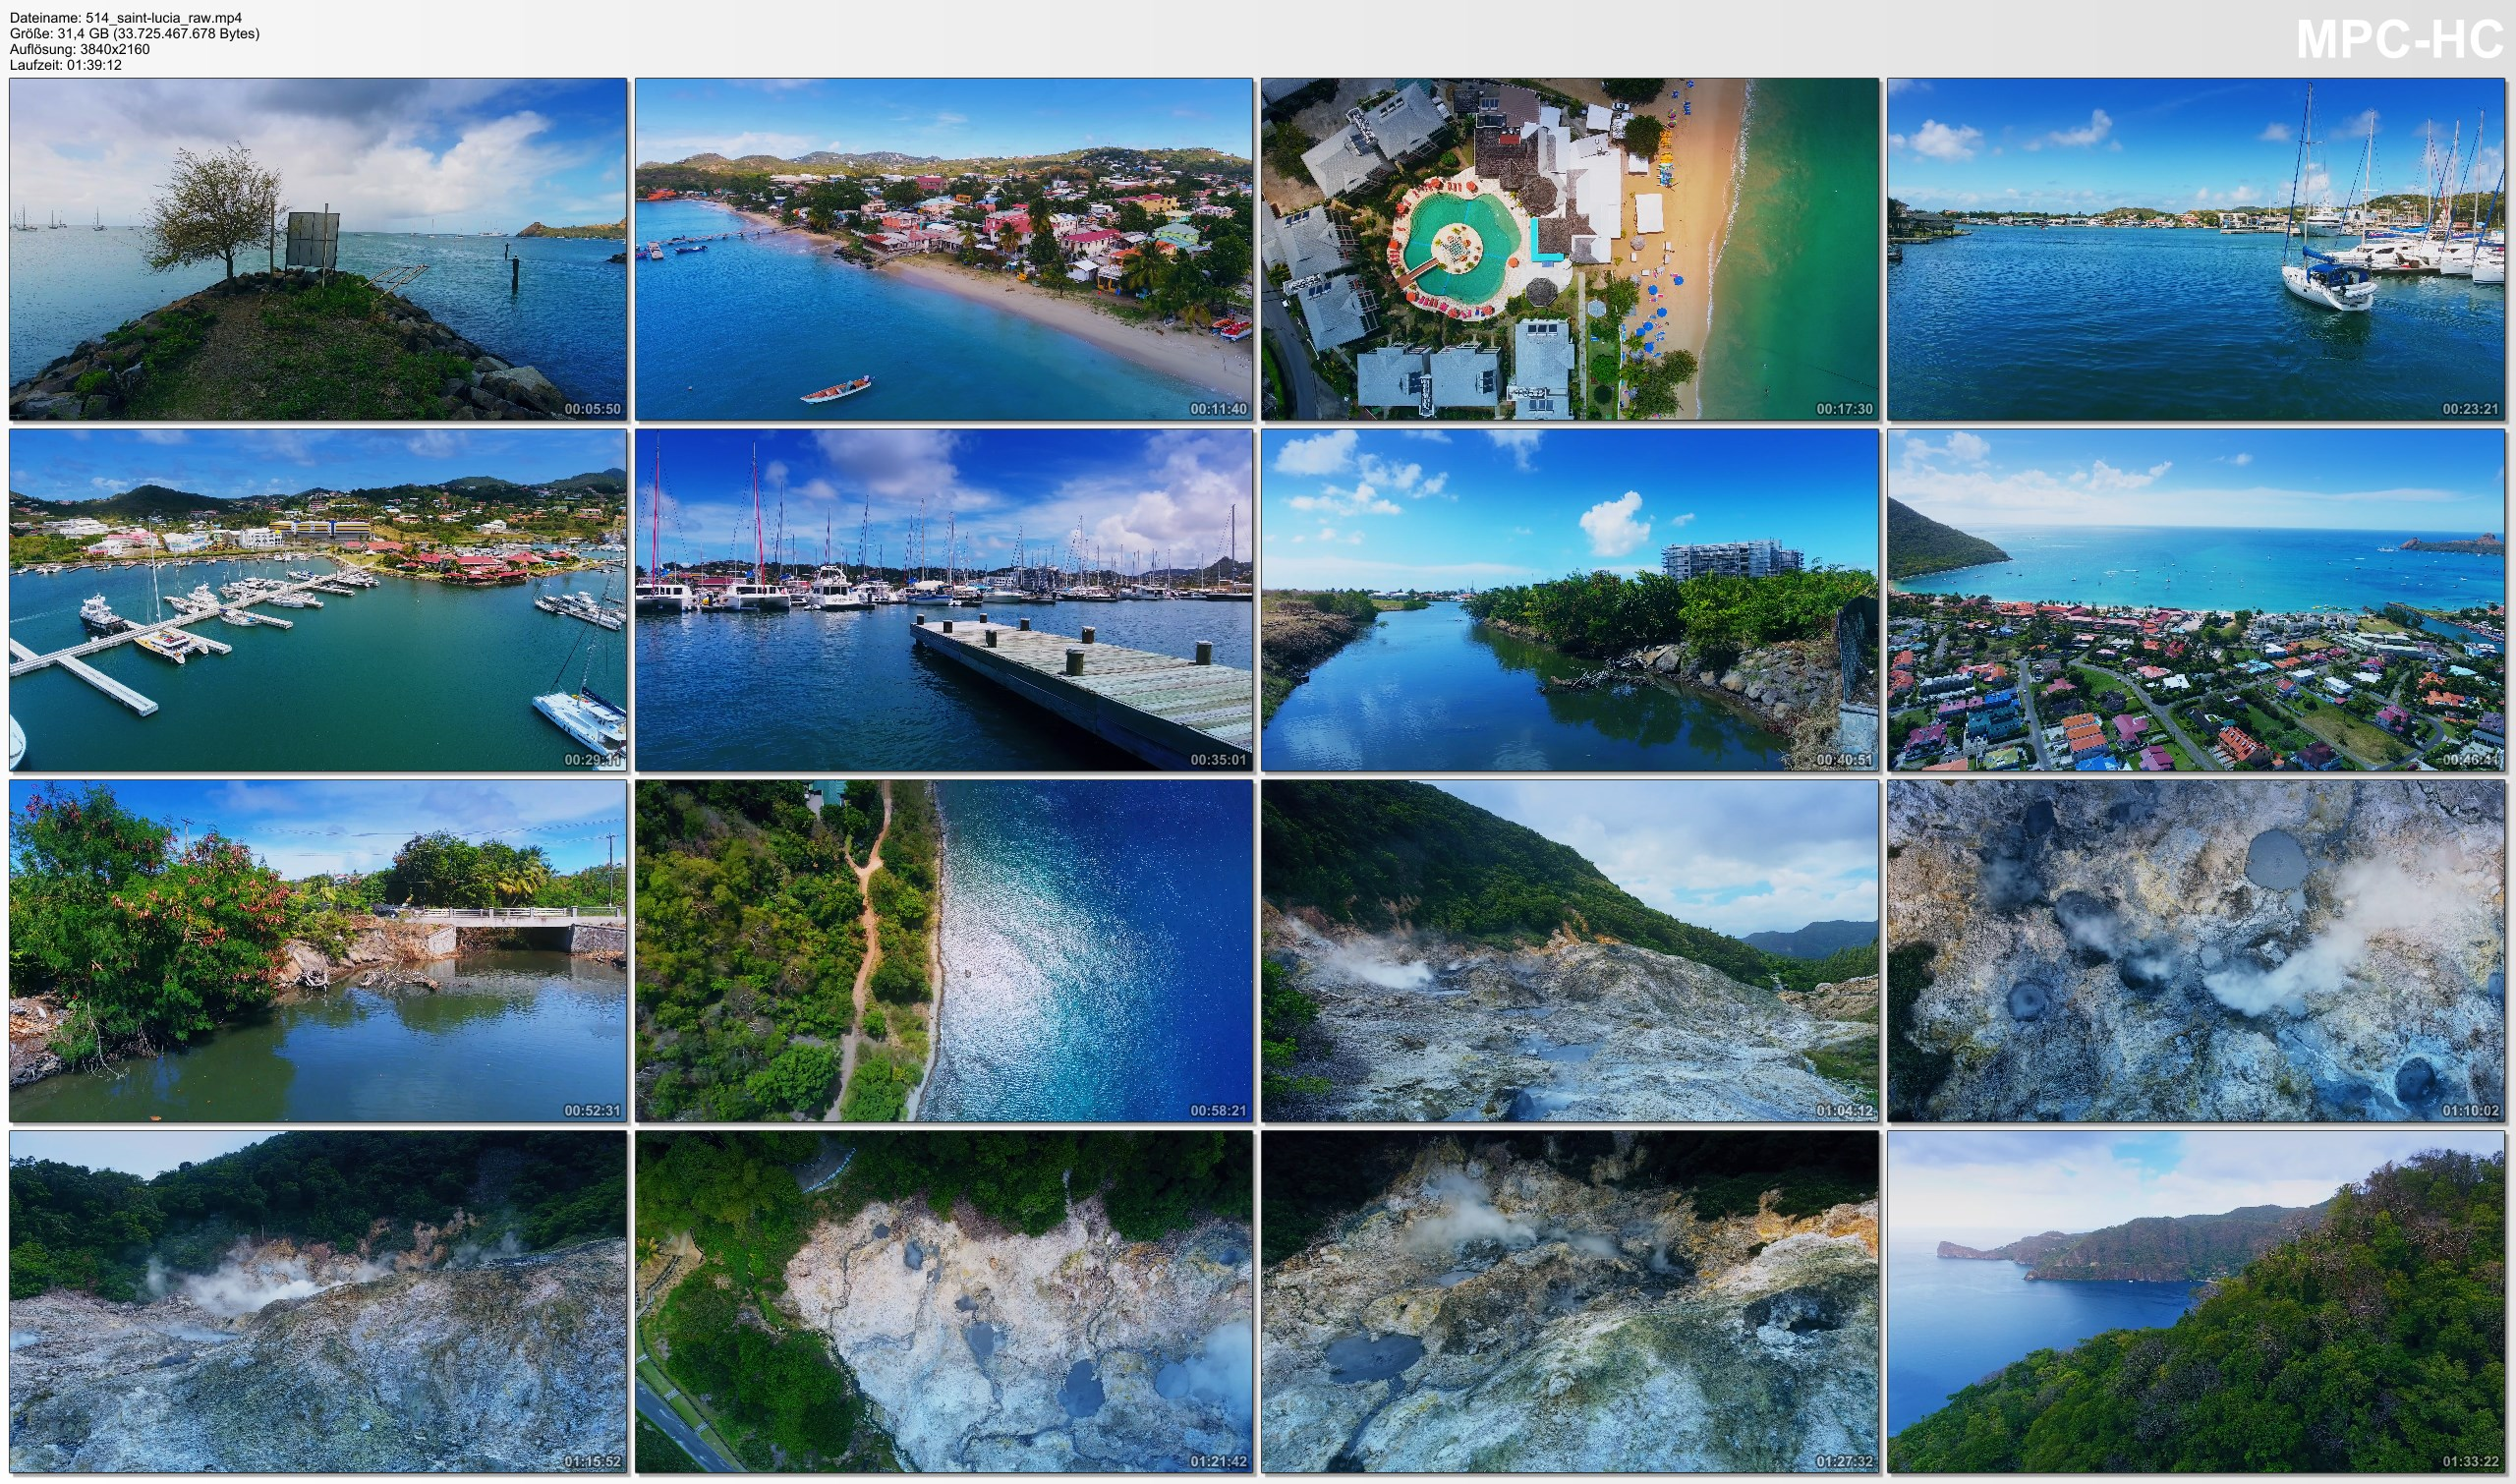 Drone Pictures from Video 【4K】Drone RAW Footage | This is SAINT LUCIA 2020 | Castries | Soufriere and More UltraHD Stock Video